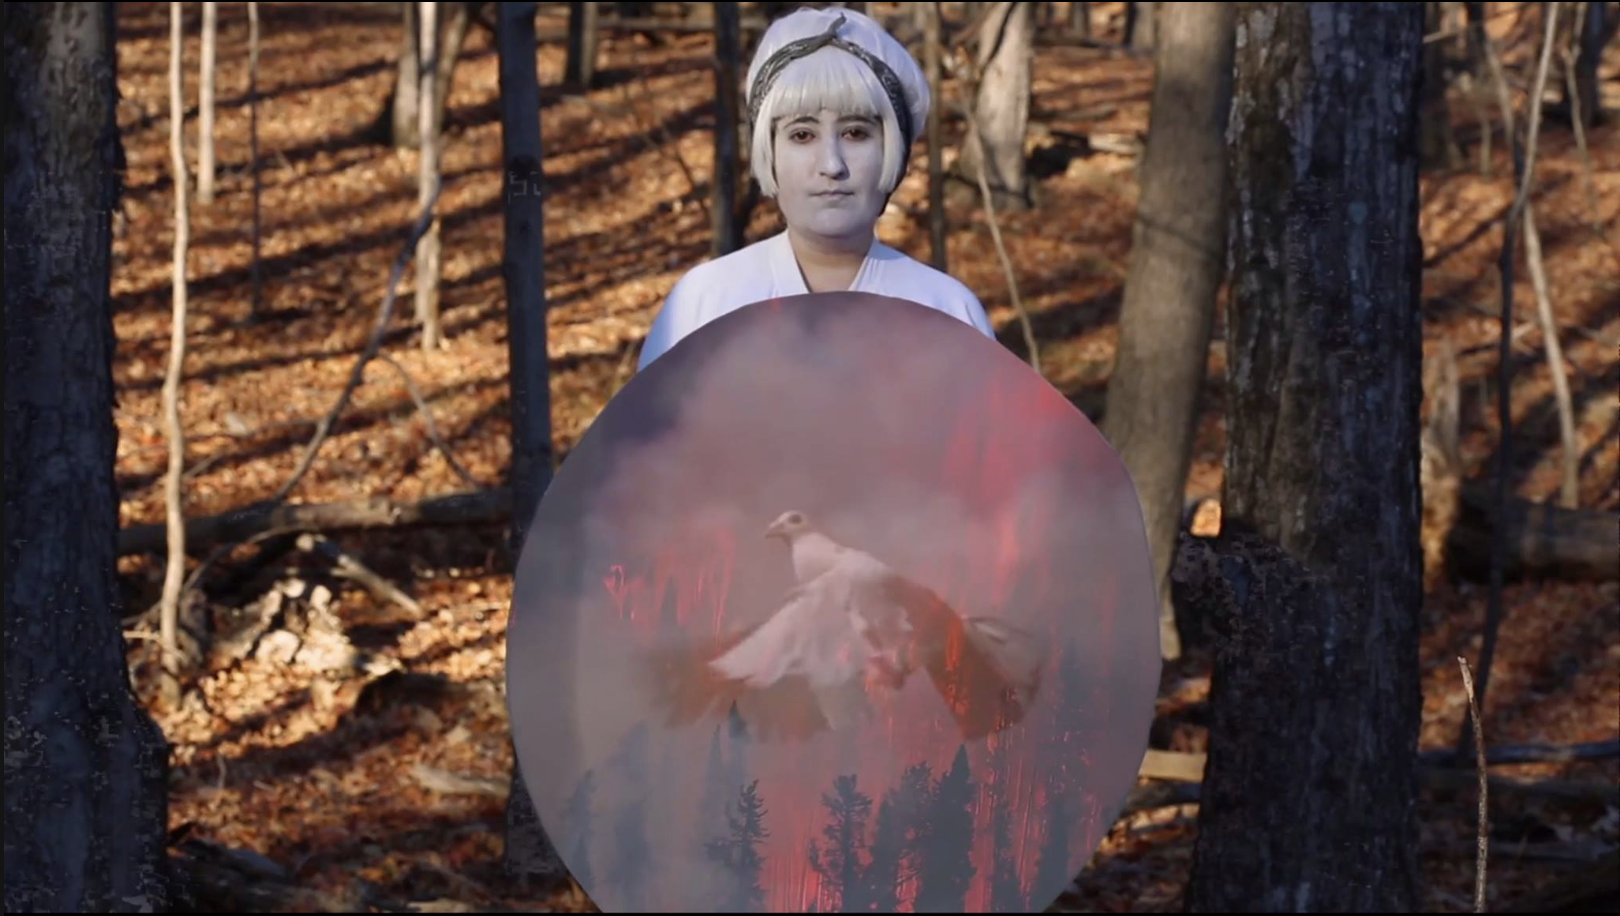 Magic Meadow Baba (performing white clown) - An exploration of one of my deceased fathers many stories of exile and refugee life. Told through the gaze of his daughter and her inability to translate. Filmed in upstate New York and green screened out of doors. (2017)Link to Video: https://vimeo.com/150205579/1fc5e4d145Link to writing I did about the piece for HEKLER:https://www.hekler.org/hekler-medium-war-memory-protest-thoughts-by-sahar-s